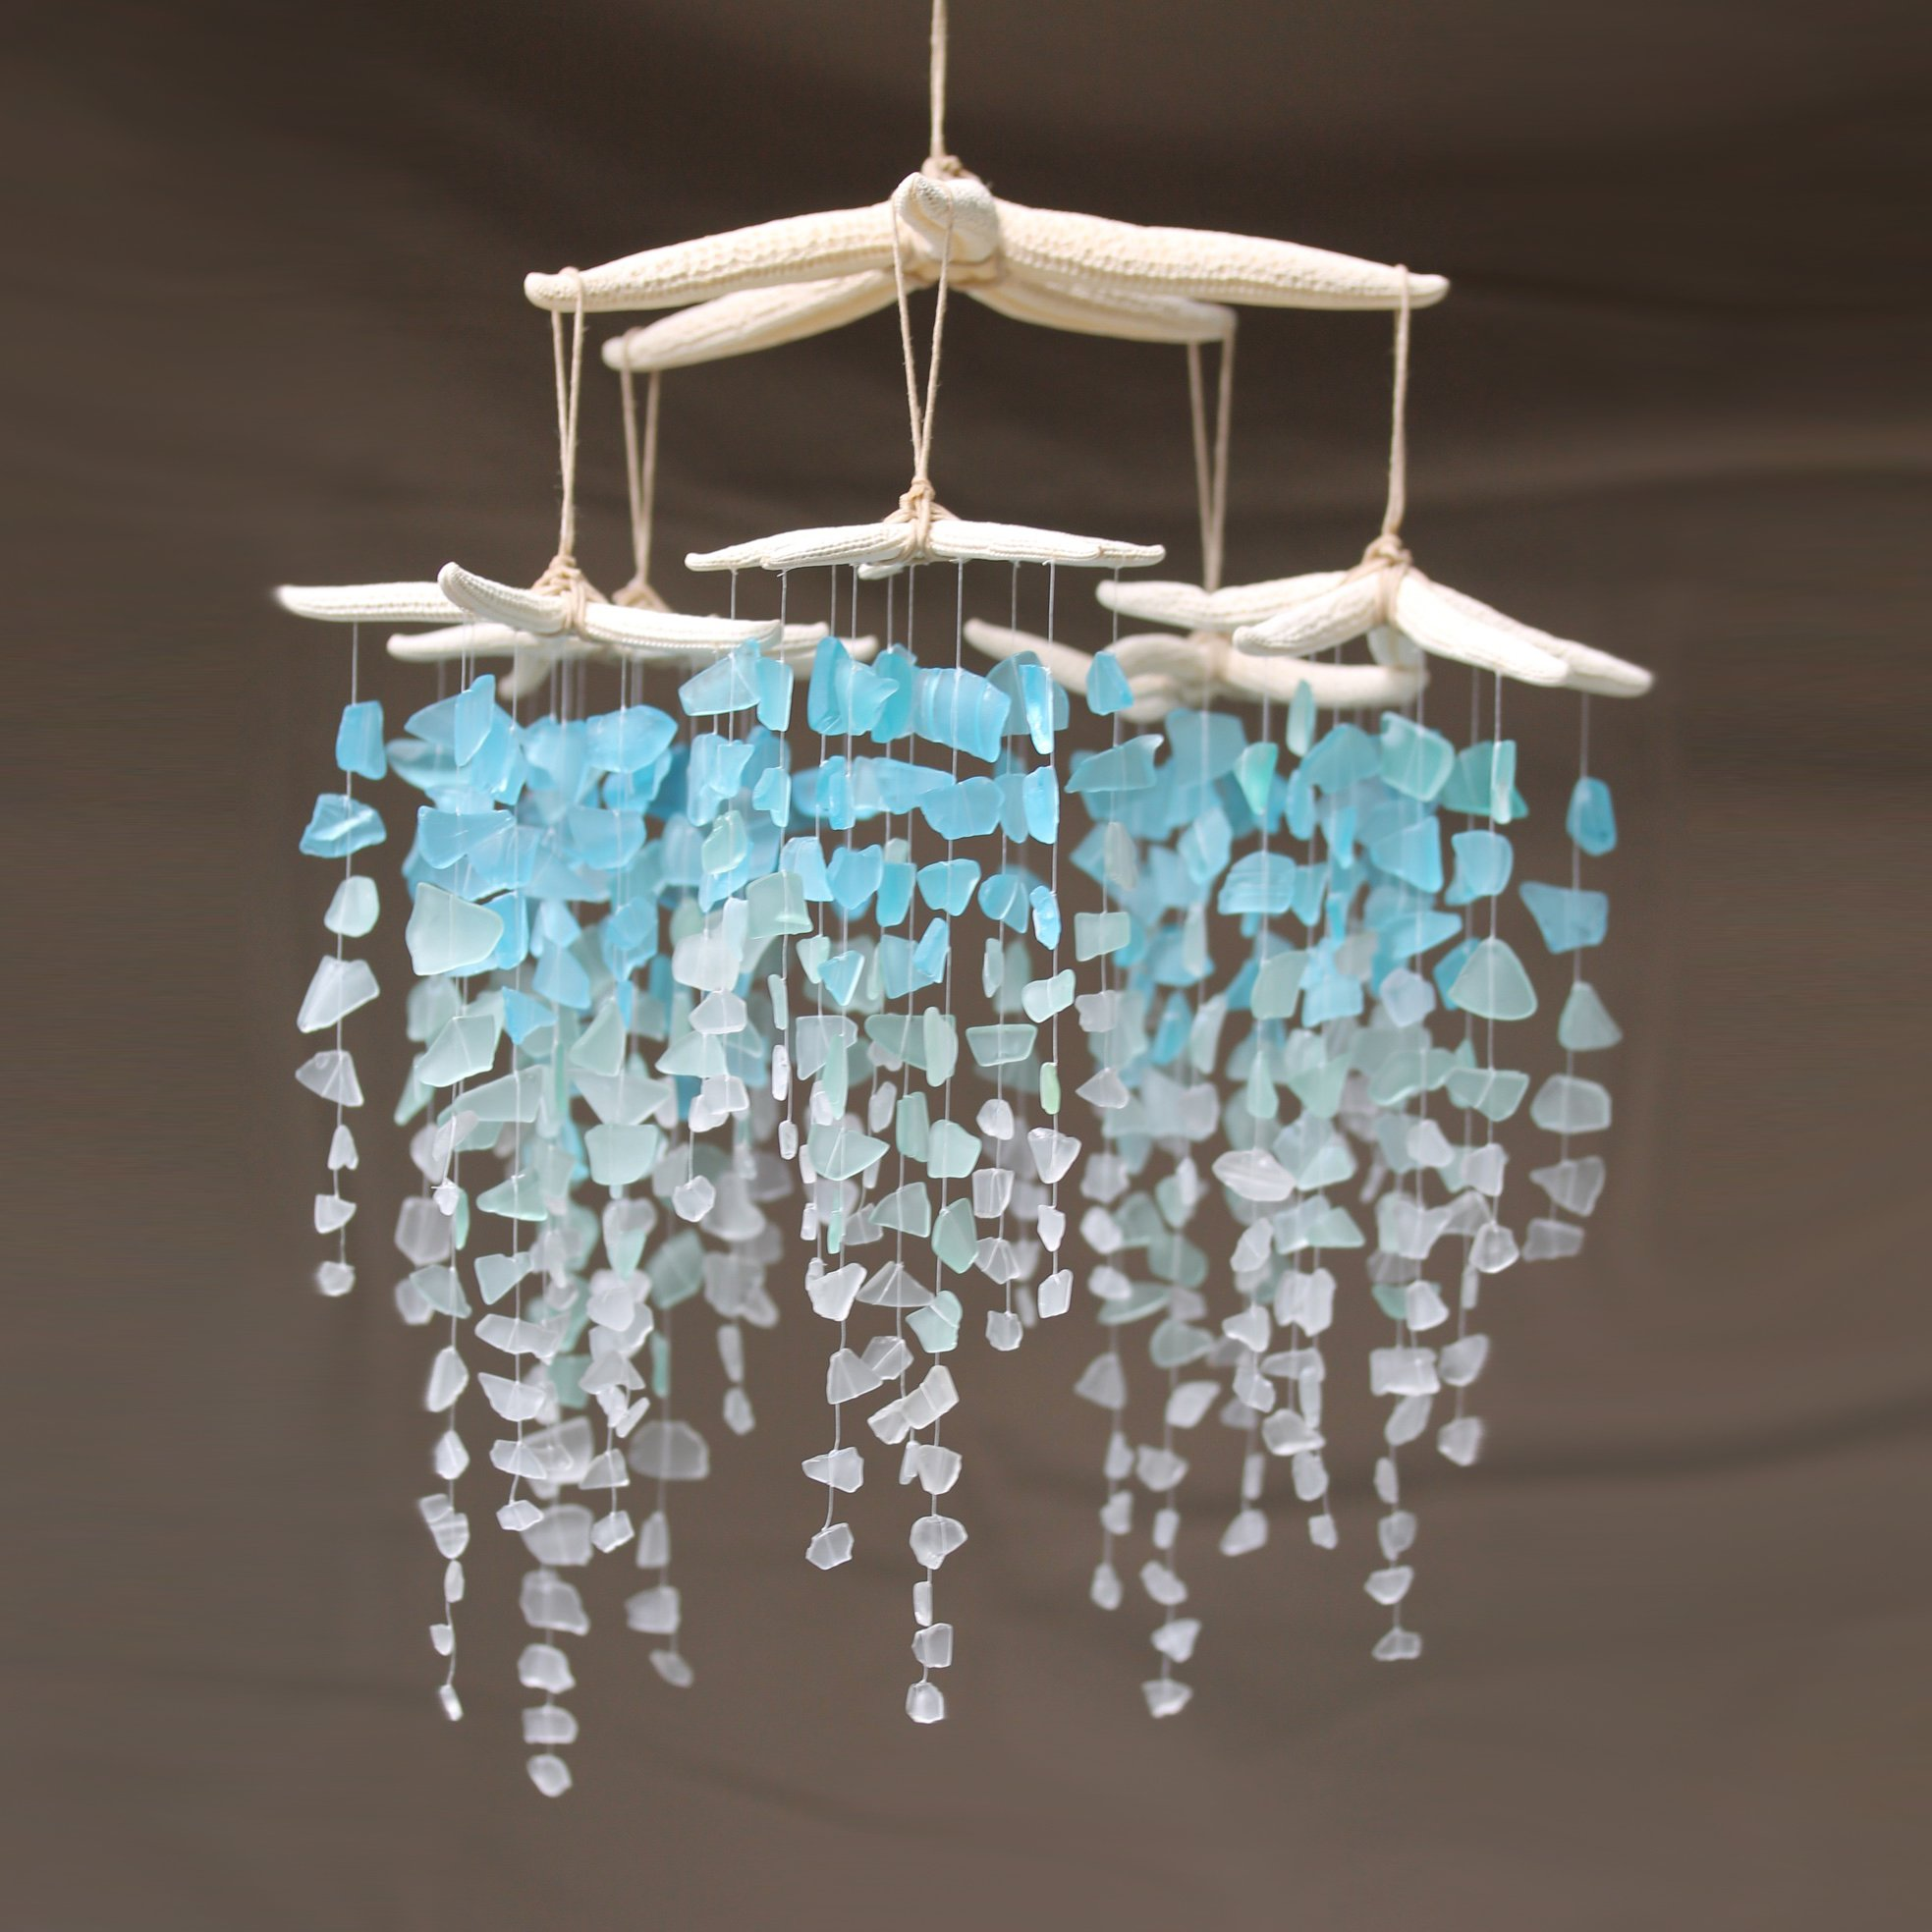 Sea Glass Starfish Mobile Colossal Ombre Chandelier Art Glass Jewelry Glass Art Stained Glass Art